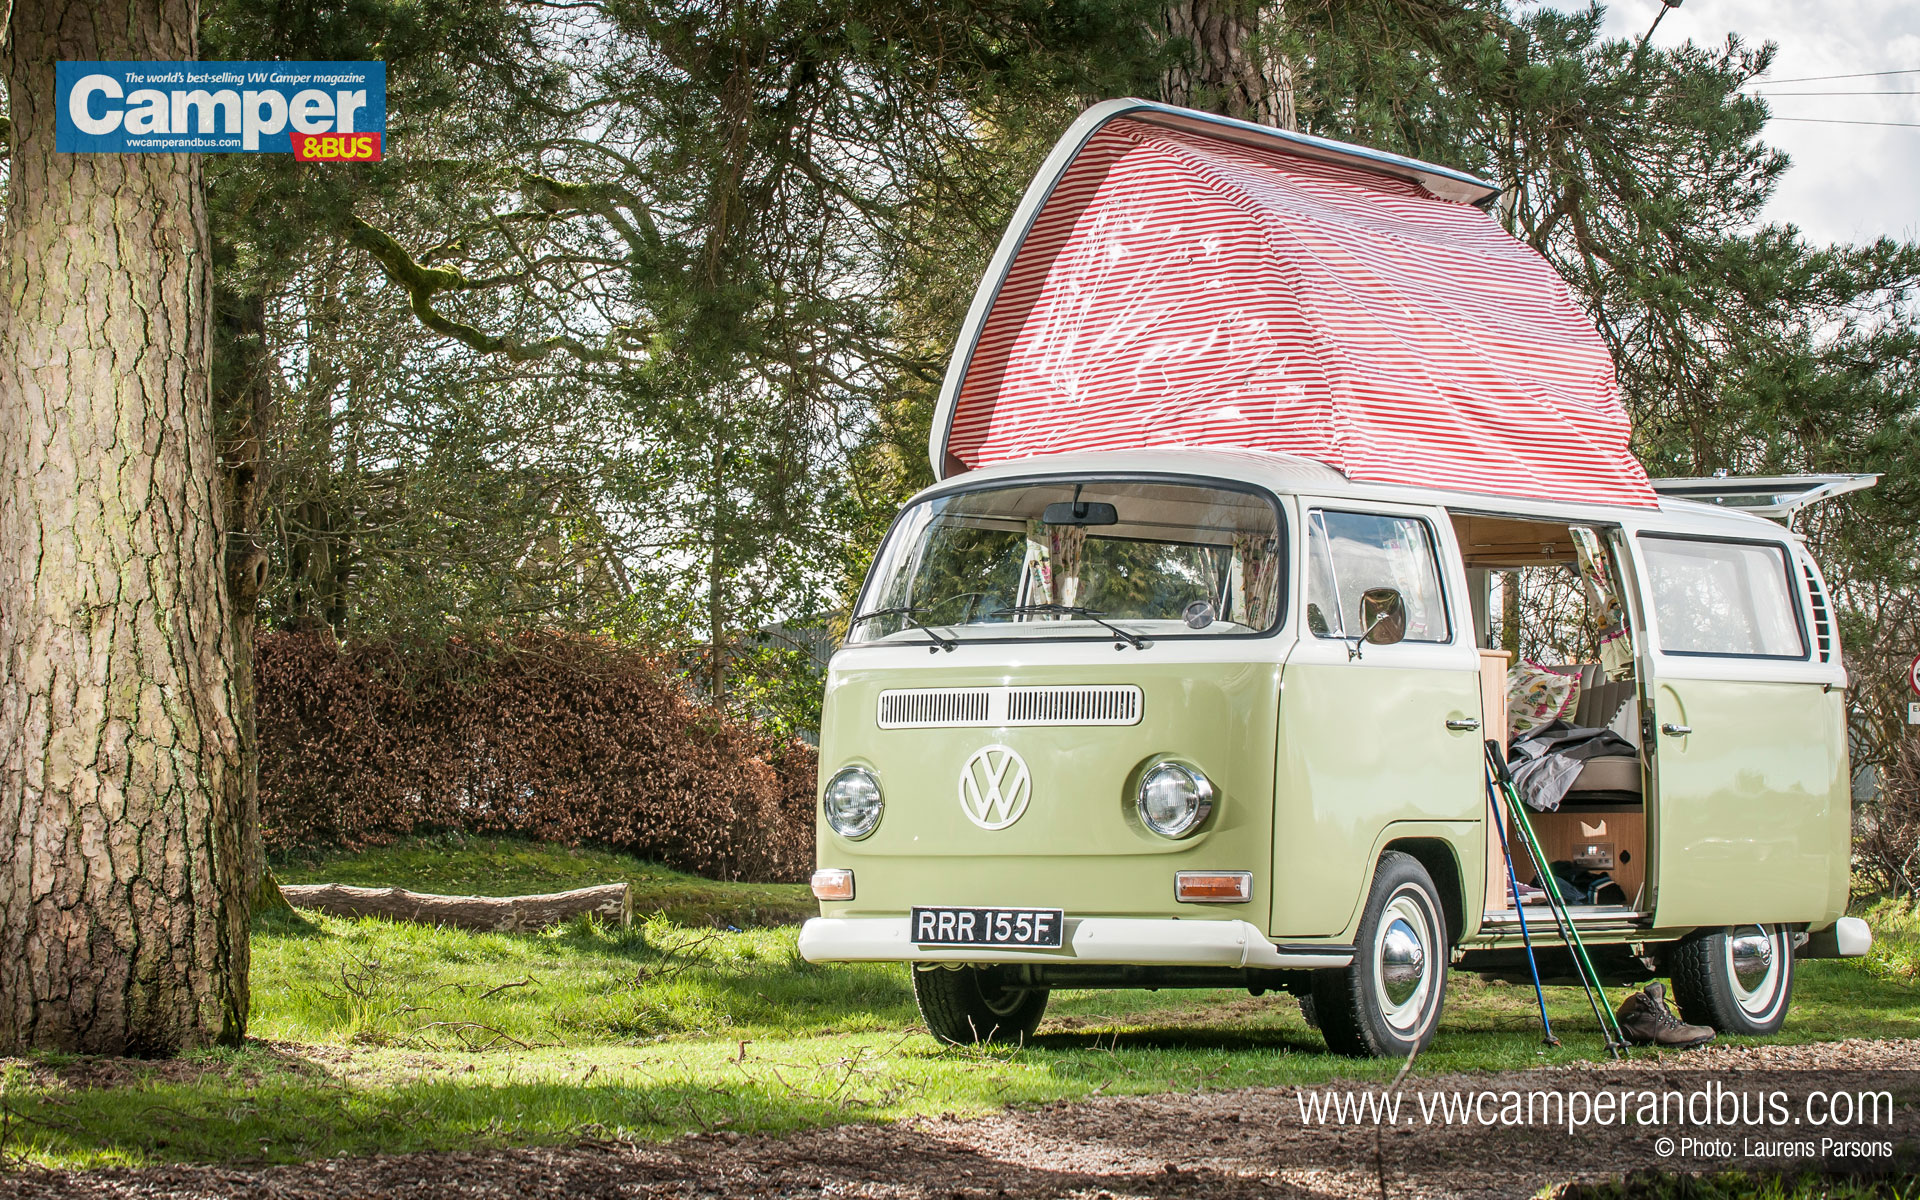 1968 Doormobile Vw Campervan Desktop Wallpaper HD Wallpapers Download Free Images Wallpaper [1000image.com]